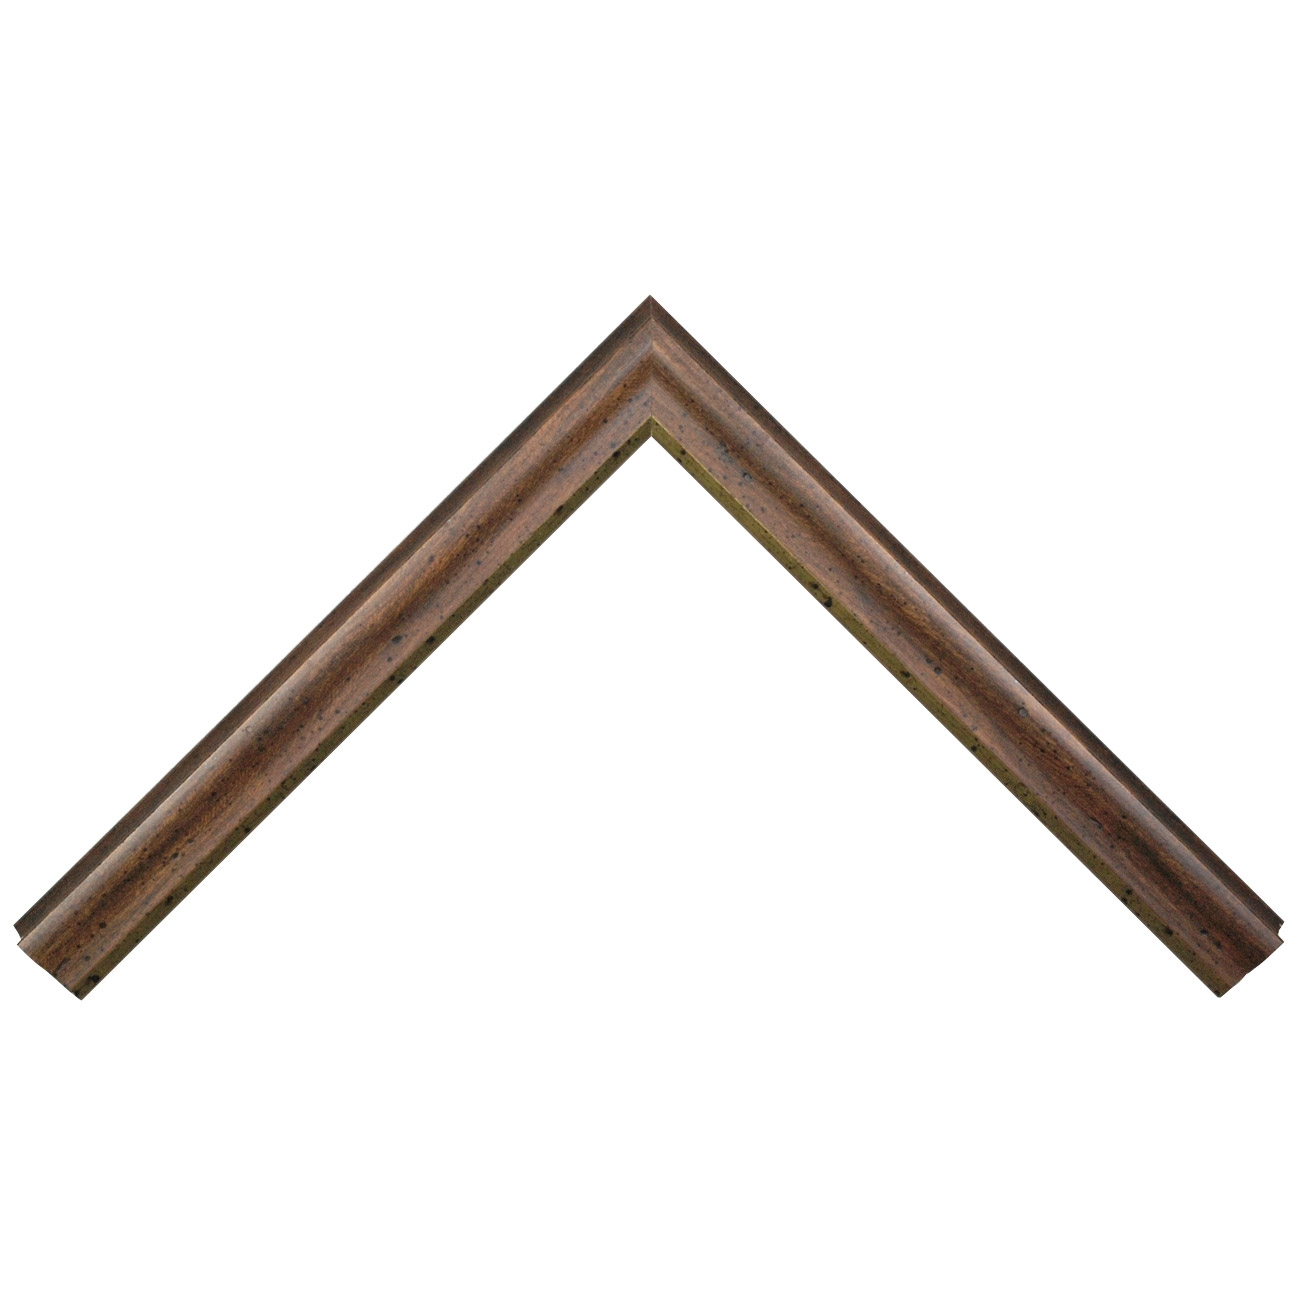 Baguette bois profil arrondi largeur 4cm couleur marron rustique filet or